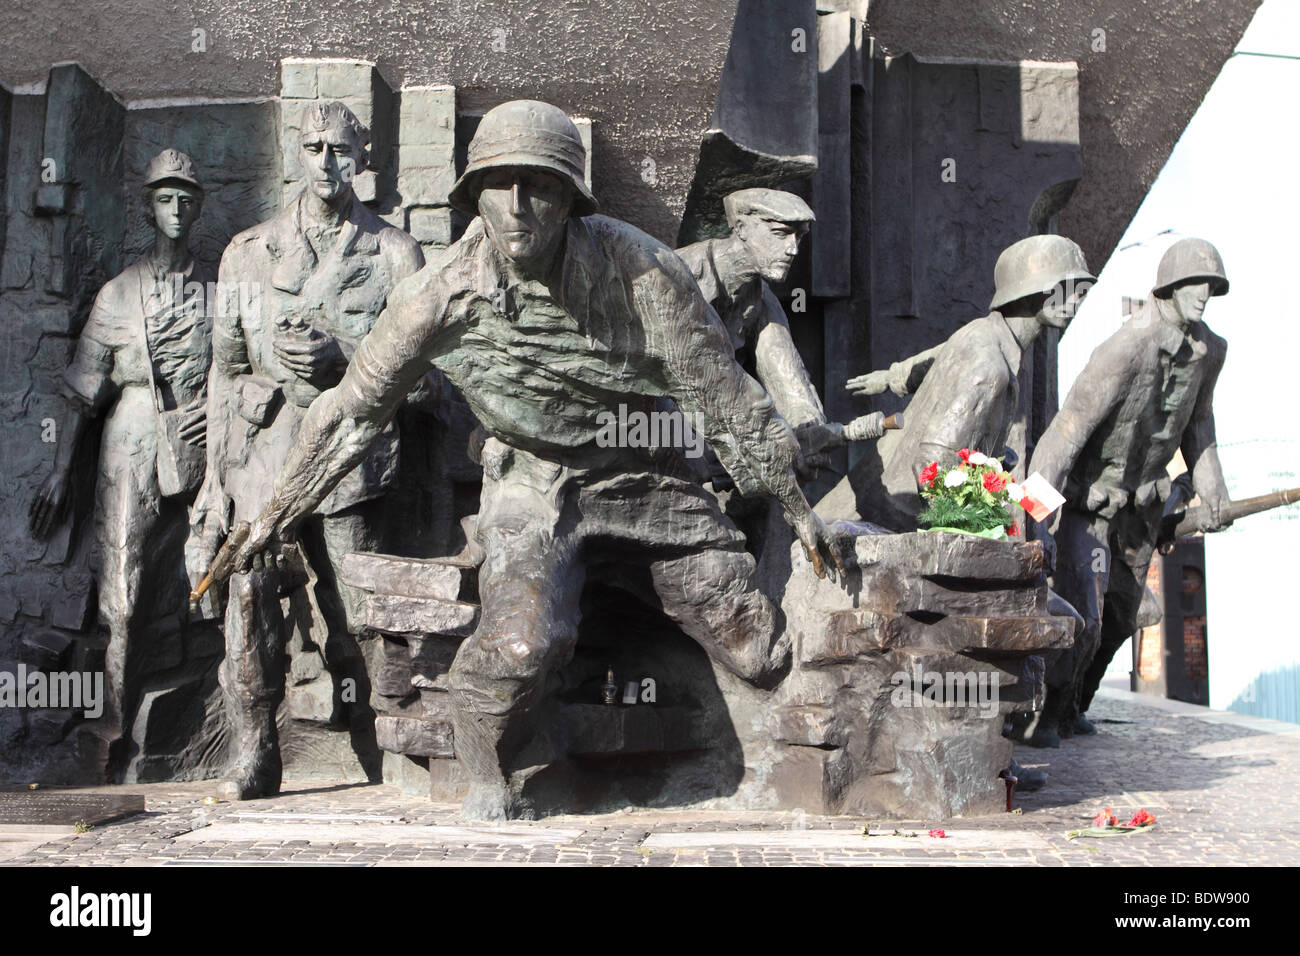 Warsaw Poland Monument to the 1944 Warsaw Uprising showing Polish resistance fighters at Plac Krasinskich in the Stock Photo